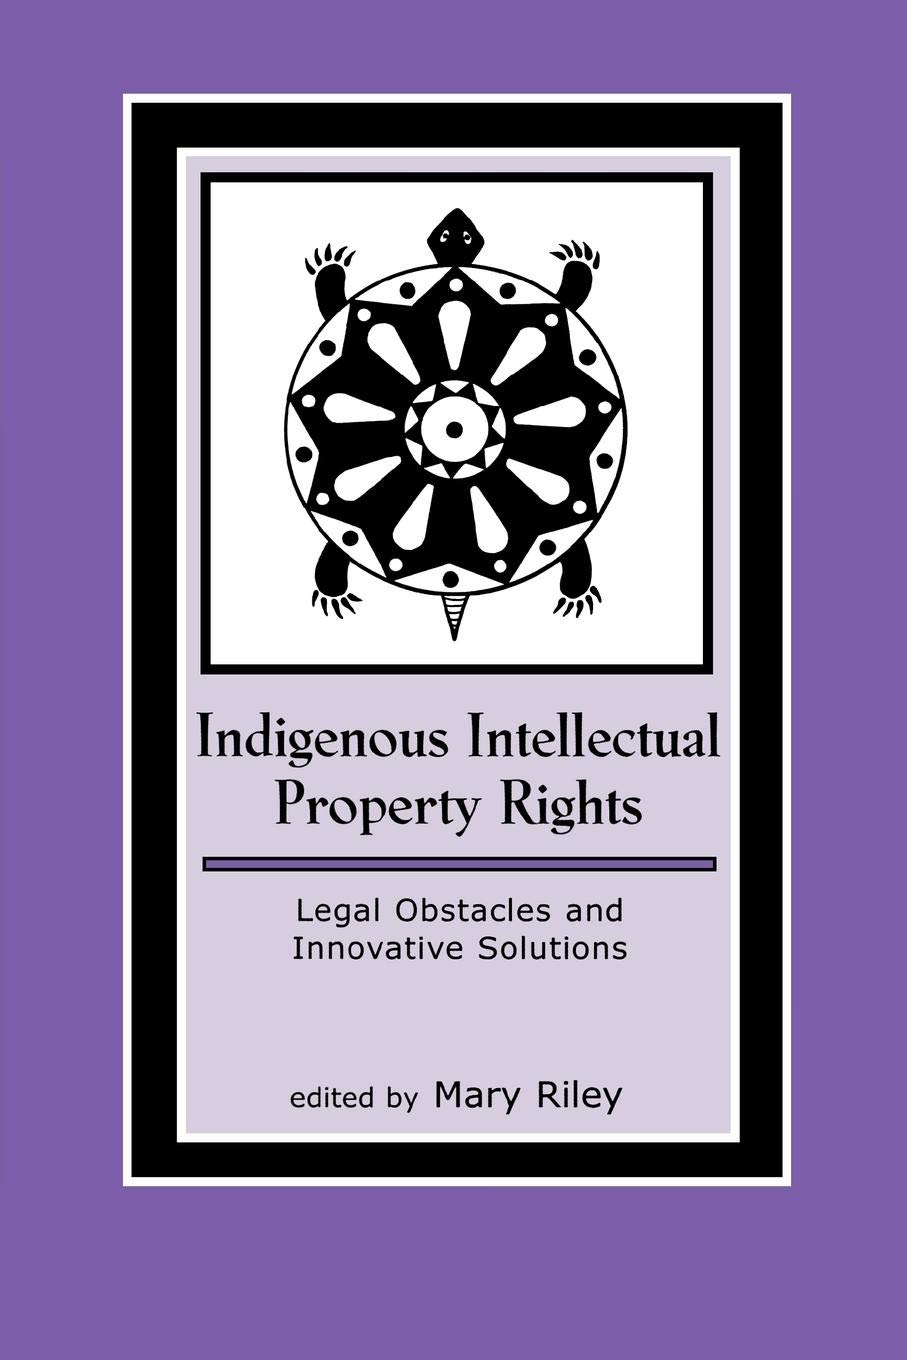 Download Indigenous Intellectual Property Rights: Legal Obstacles and Innovative Solutions (Contemporary Native American Communities) PDF